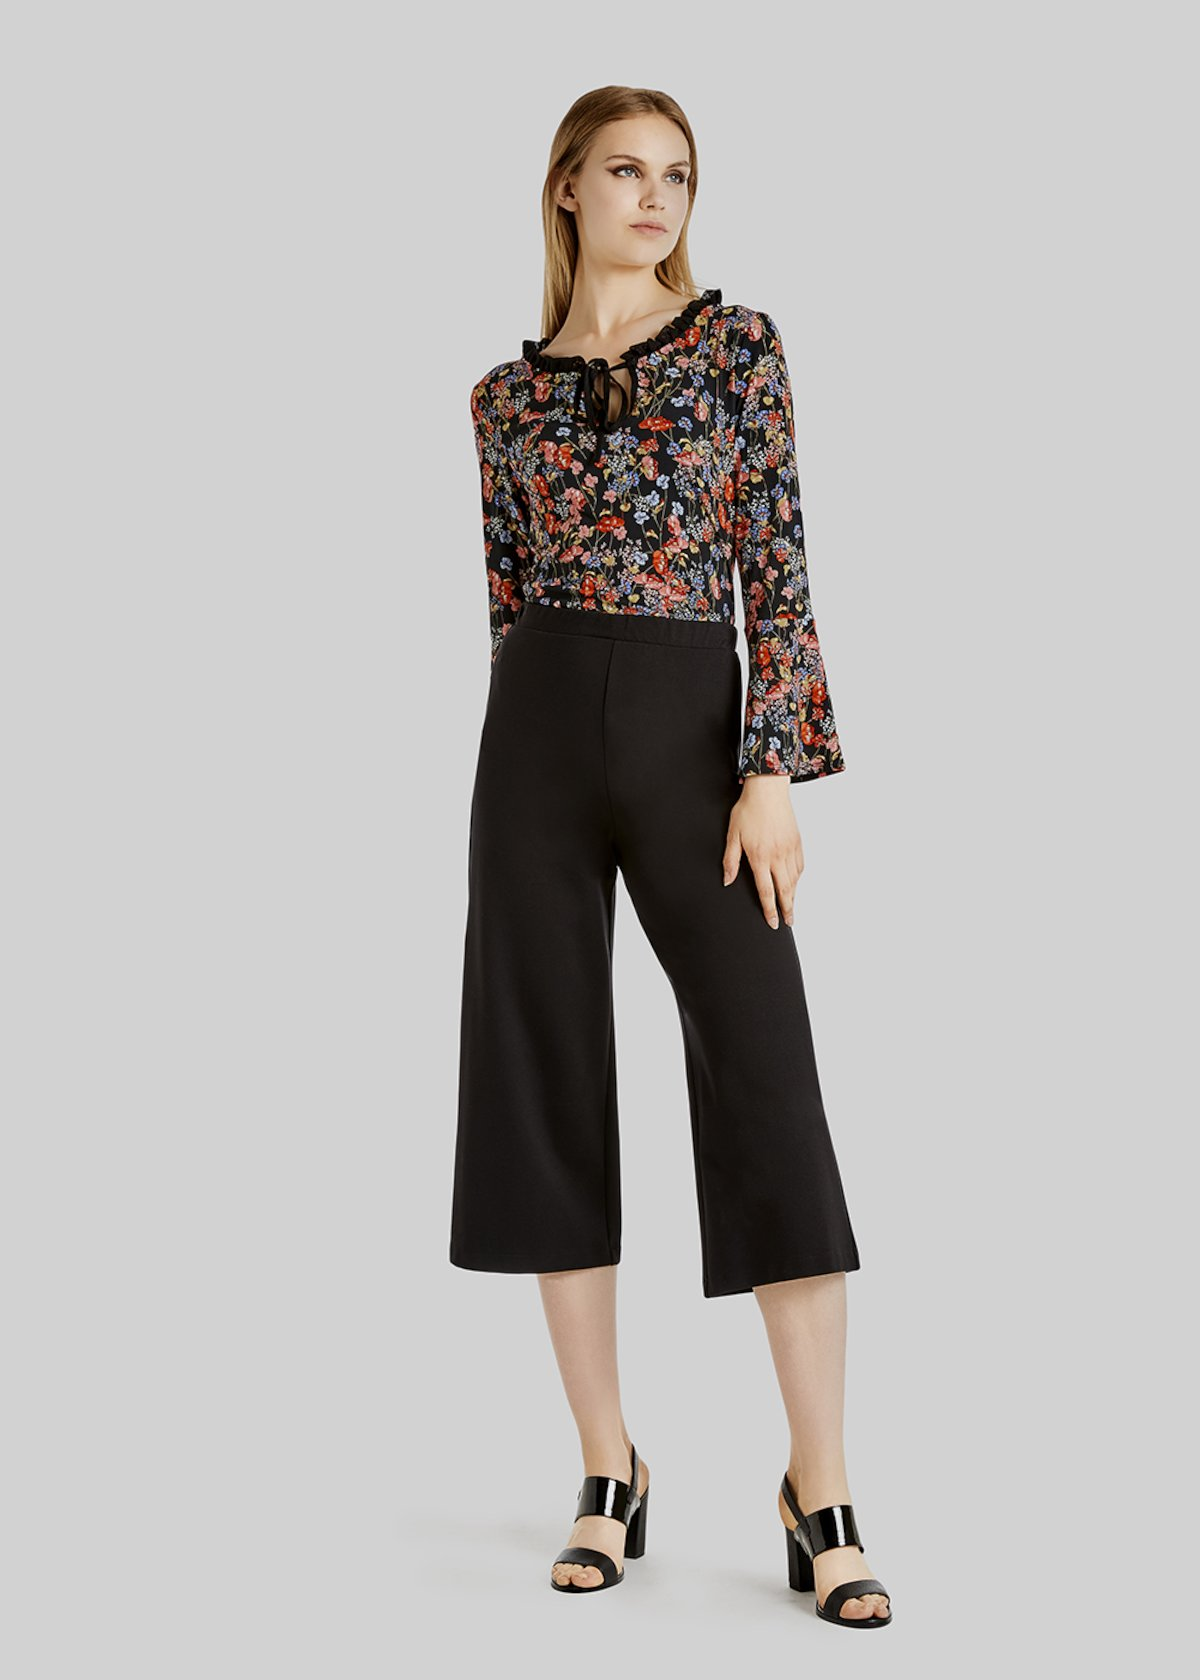 Plinios crepe palazzo trousers - Black - Woman - Category image